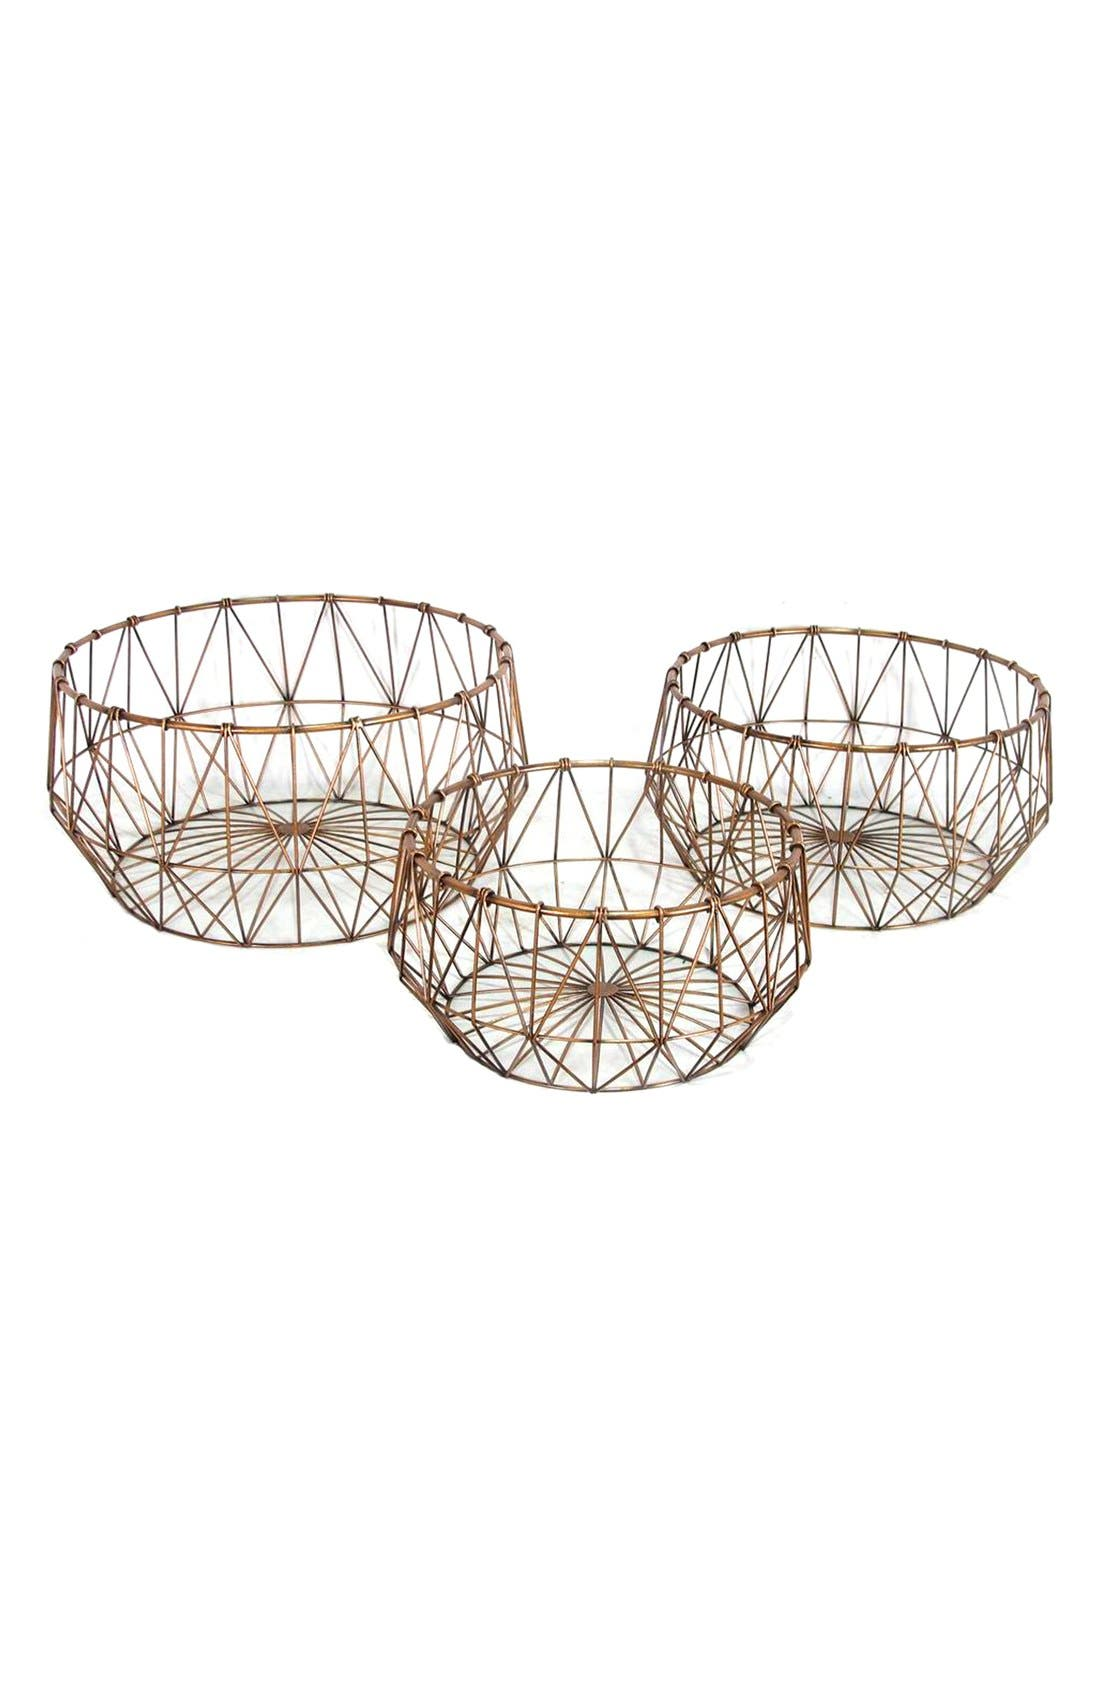 Main Image - Crystal Art Gallery Copper Wire Baskets (Set of 3)